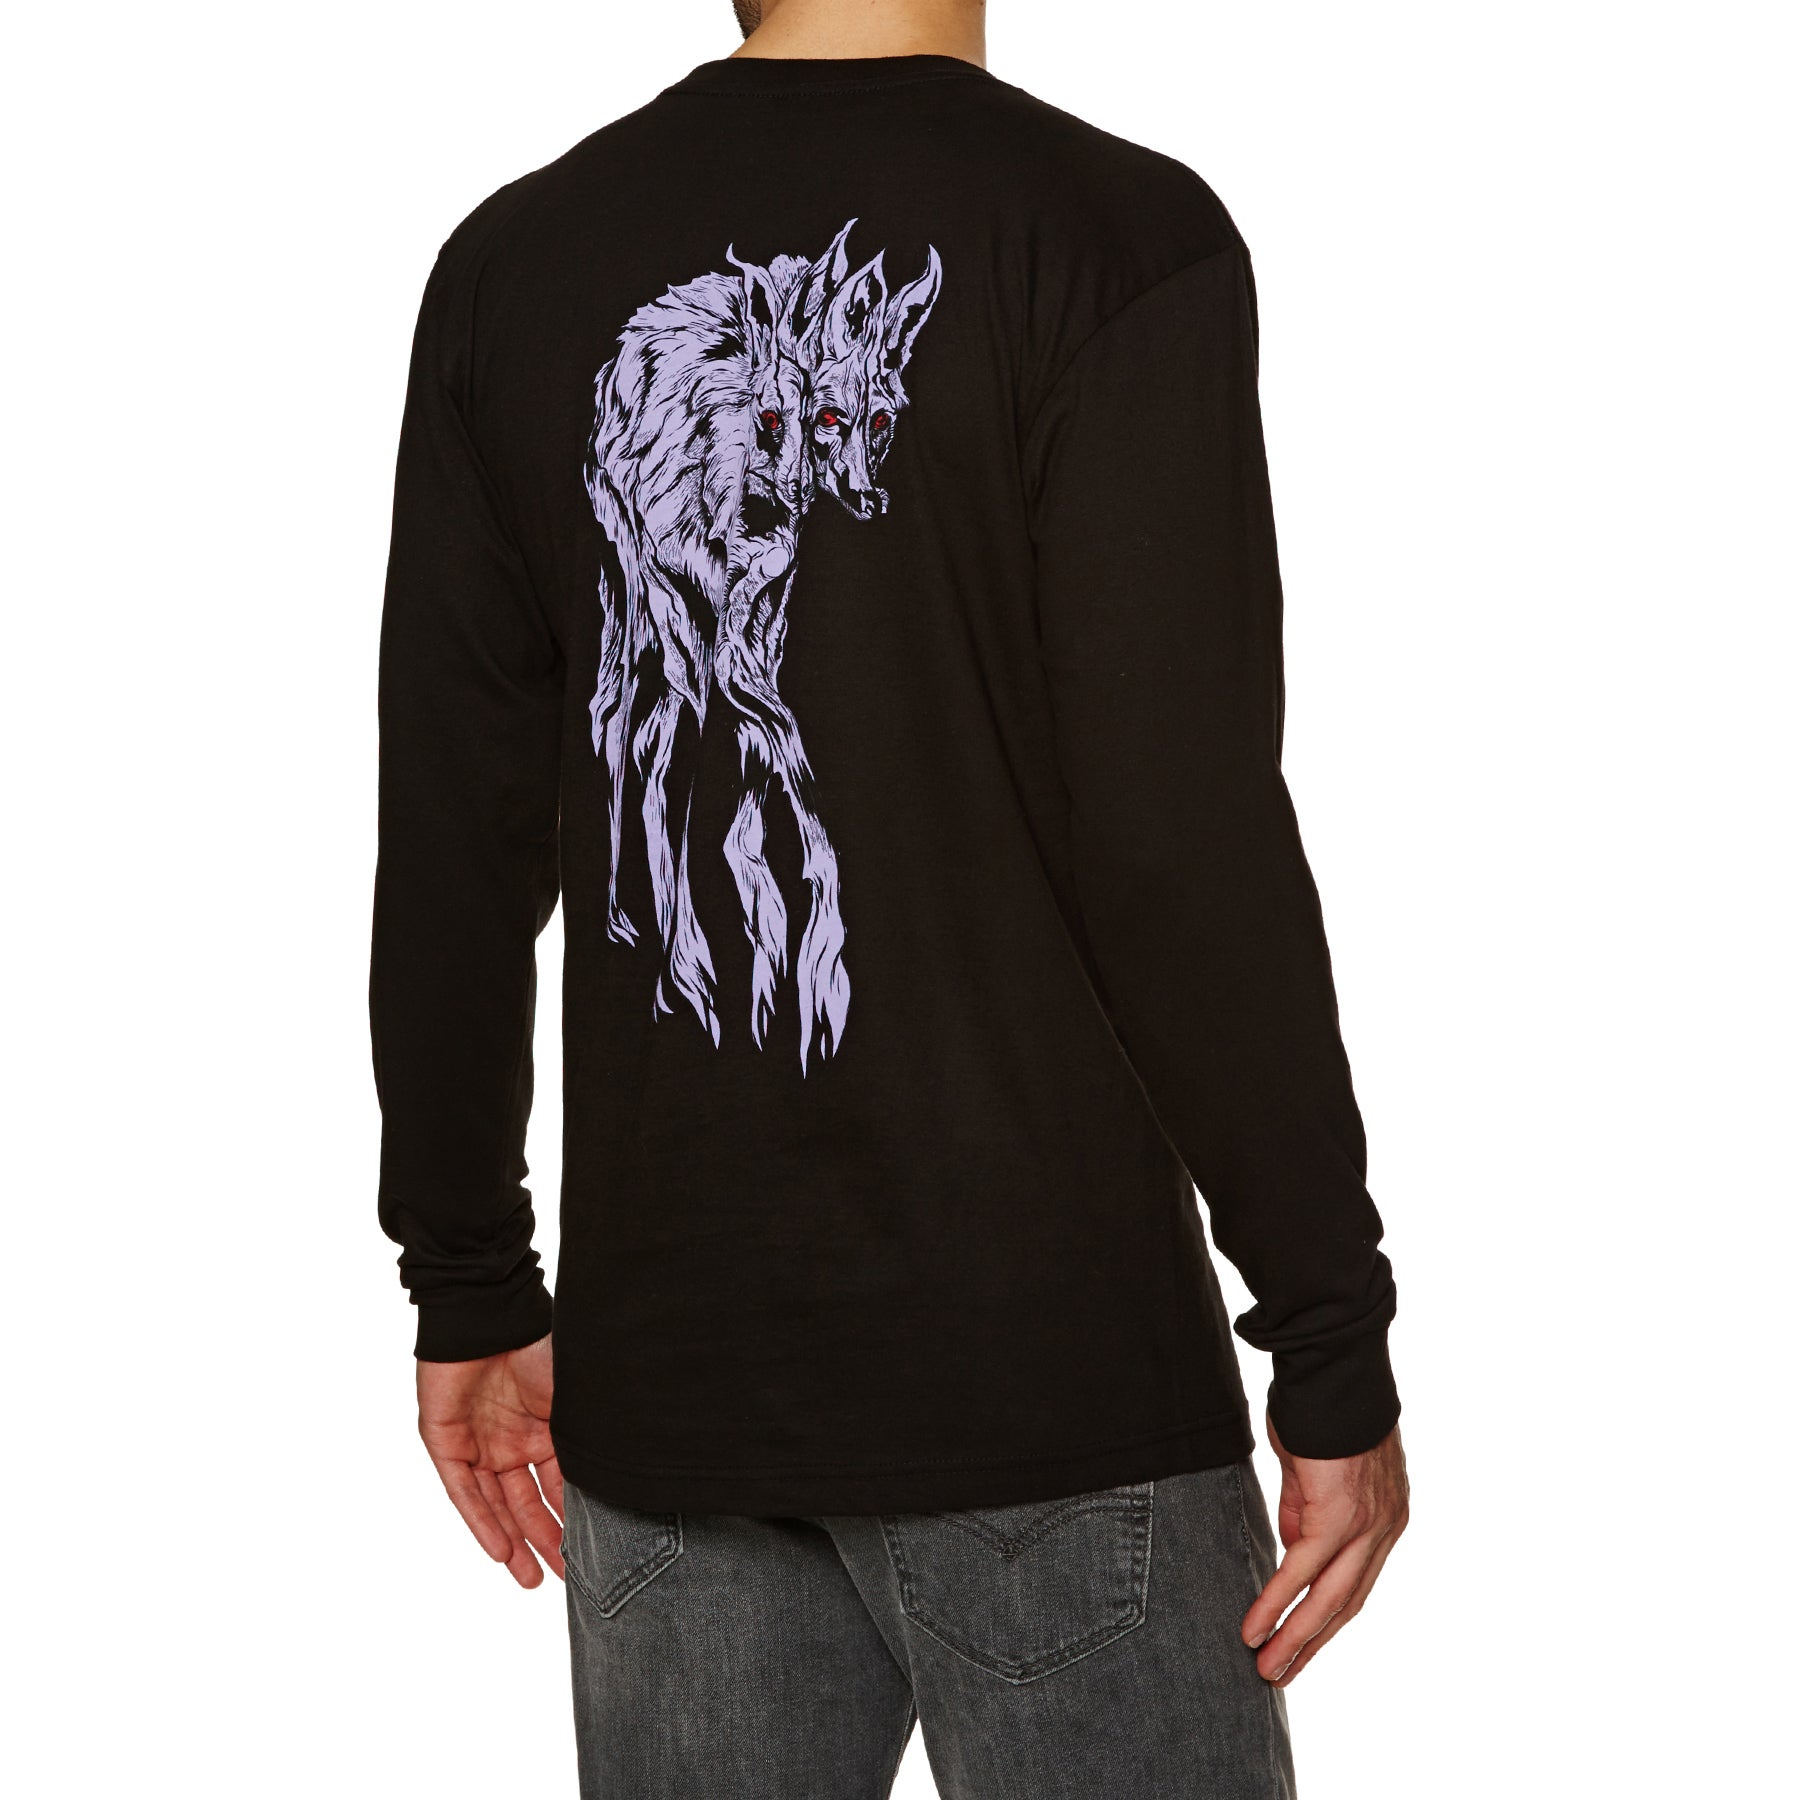 Welcome Maned Woof Long Sleeve T-Shirt - Black